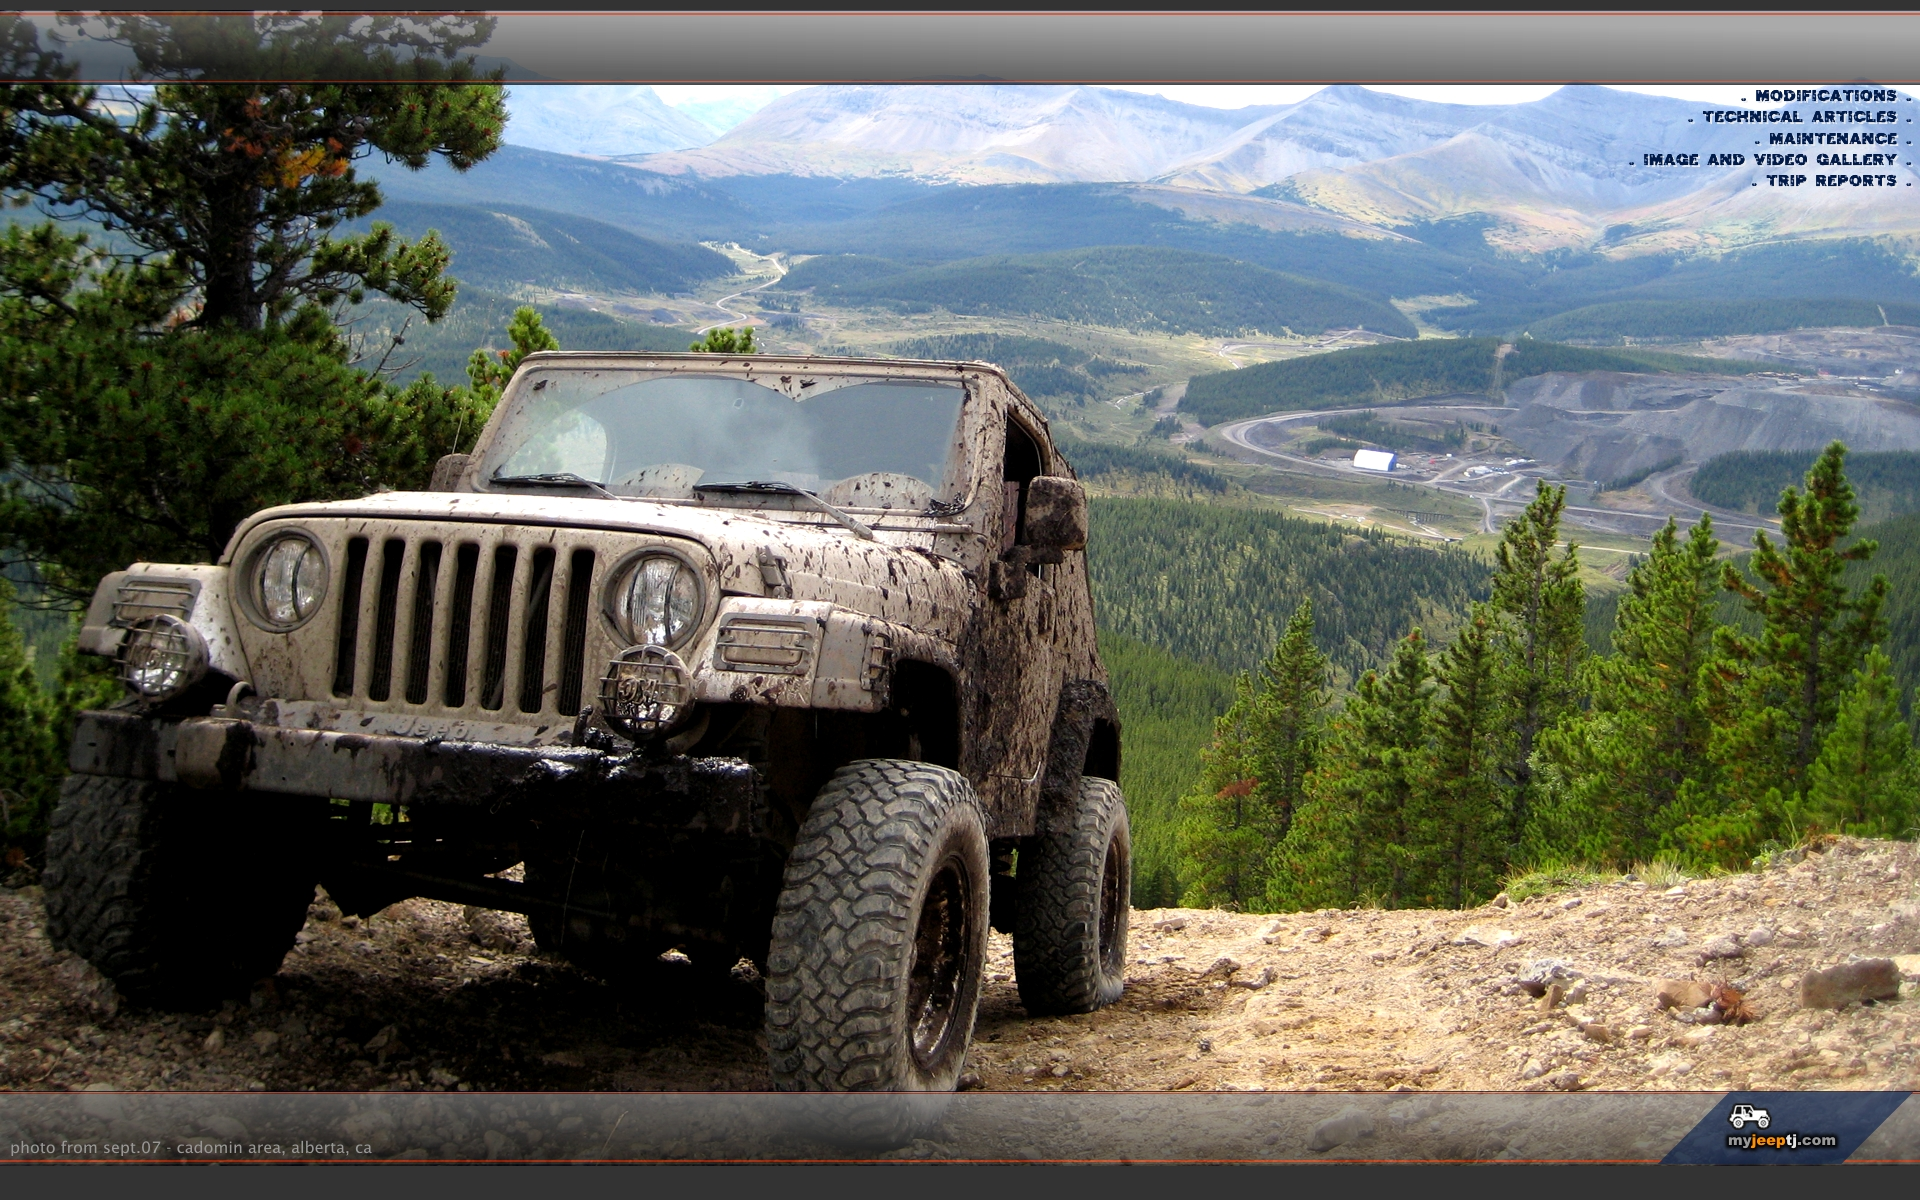 Hd Wallpapers Jeep Wrangler 1920 X 1080 885 Kb Jpeg HD Wallpapers 1920x1200